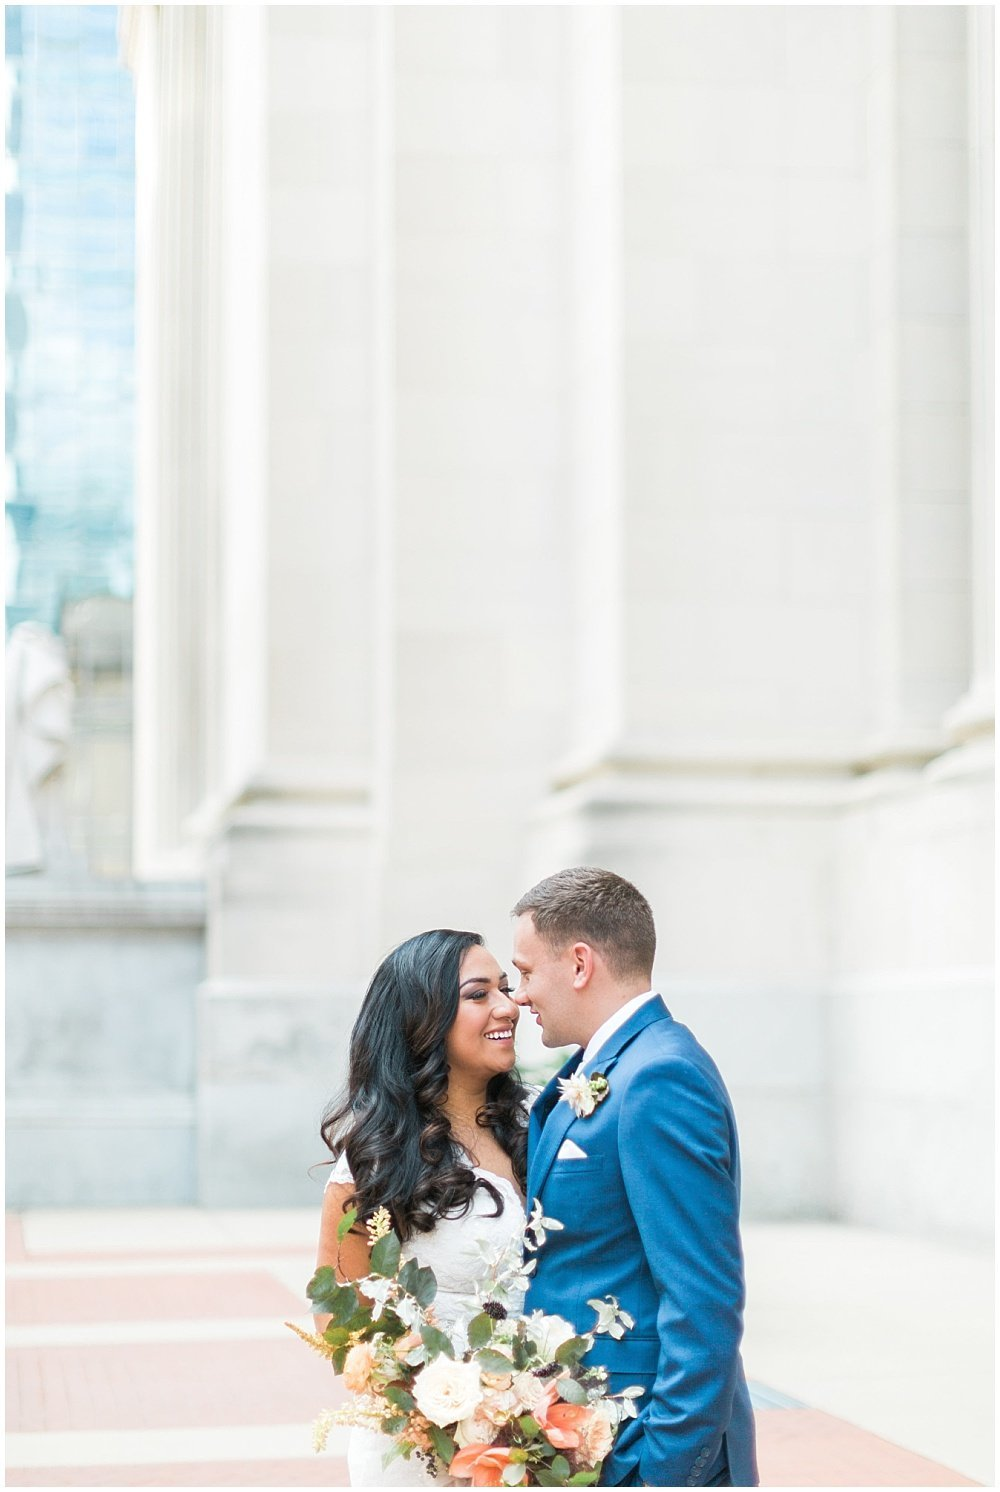 Summer-Mexican-Inspired-Gold-And-Floral-Crowne-Plaza-Indianapolis-Downtown-Union-Station-Wedding-Cory-Jackie-Wedding-Photographers-Jessica-Dum-Wedding-Coordination_photo___0009